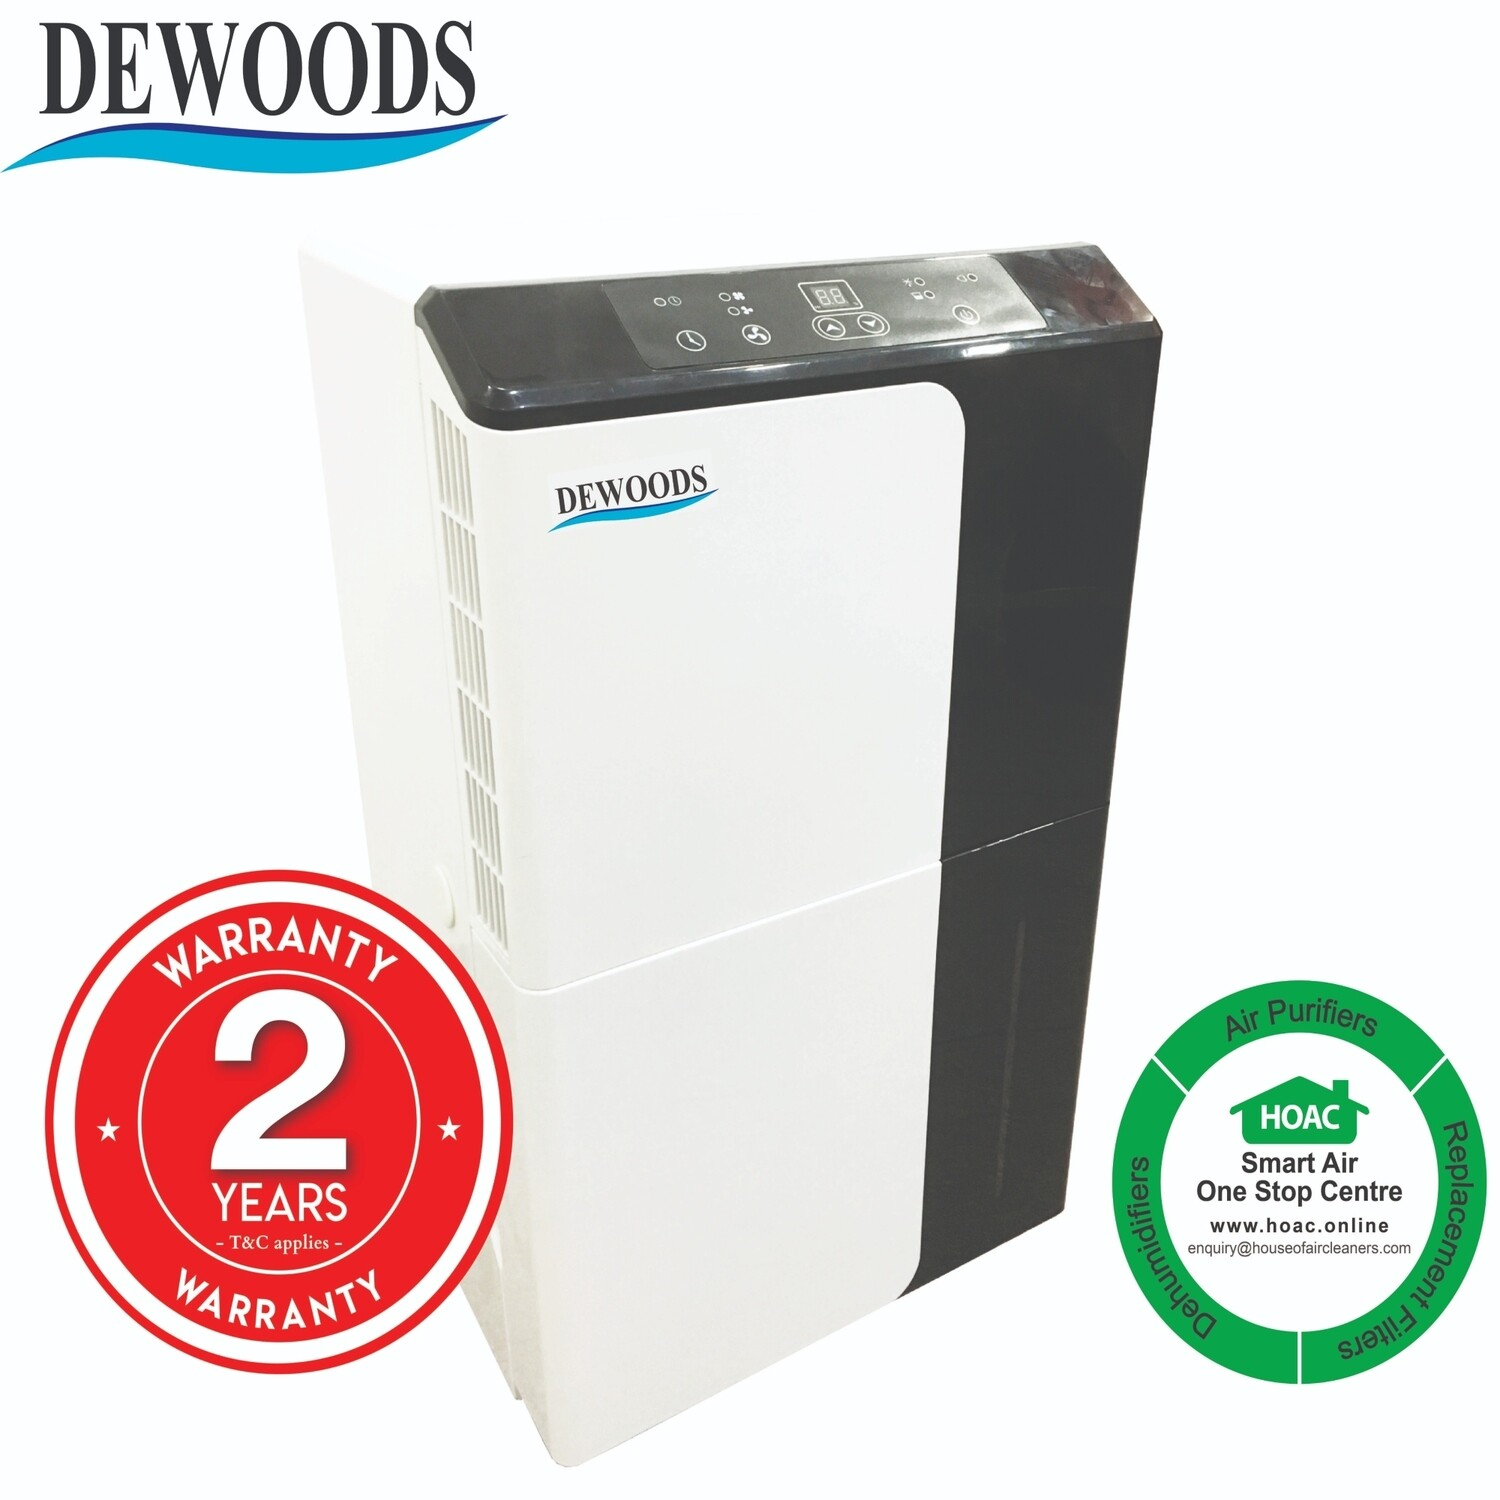 DEWOODS Dehumidifier MDH-30A (30 Litres) With 2 YEARS WARRANTY